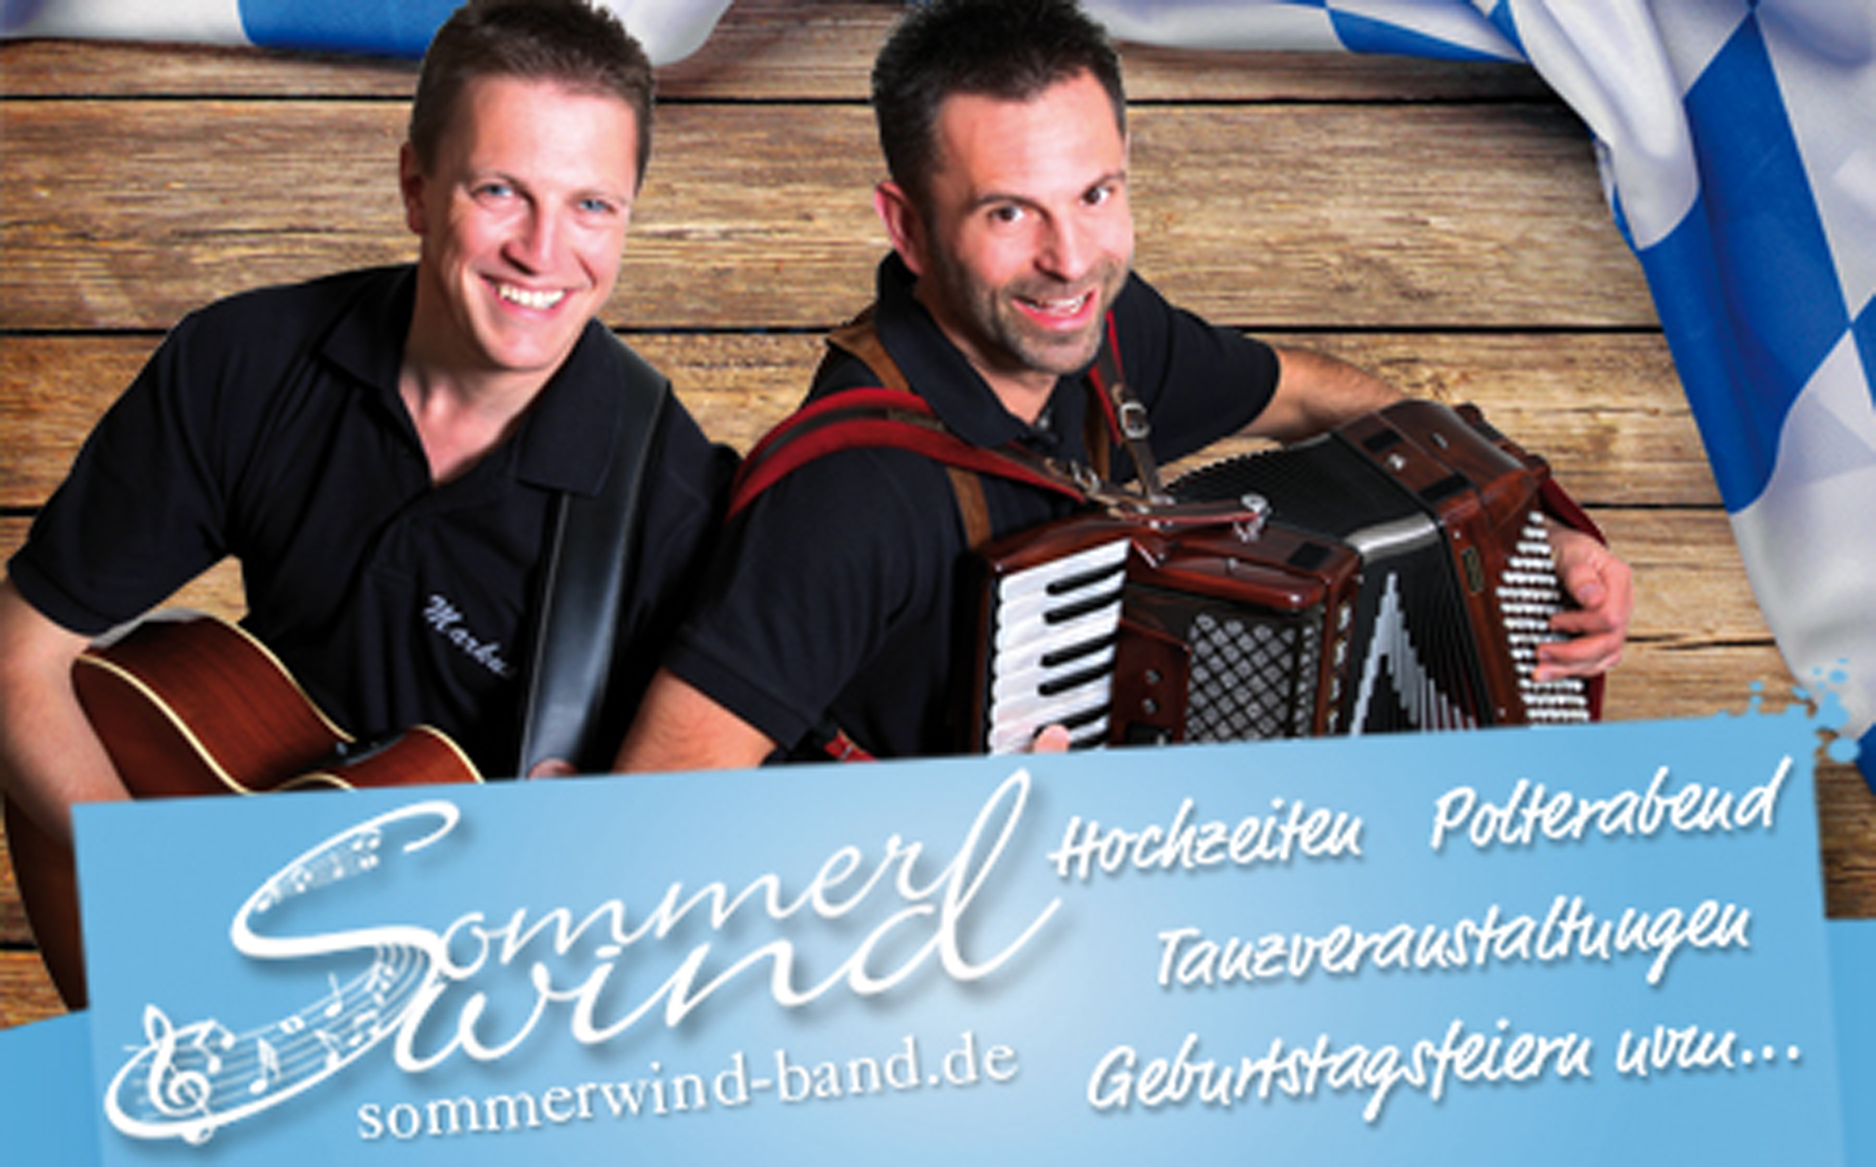 Sommerwind-band.de